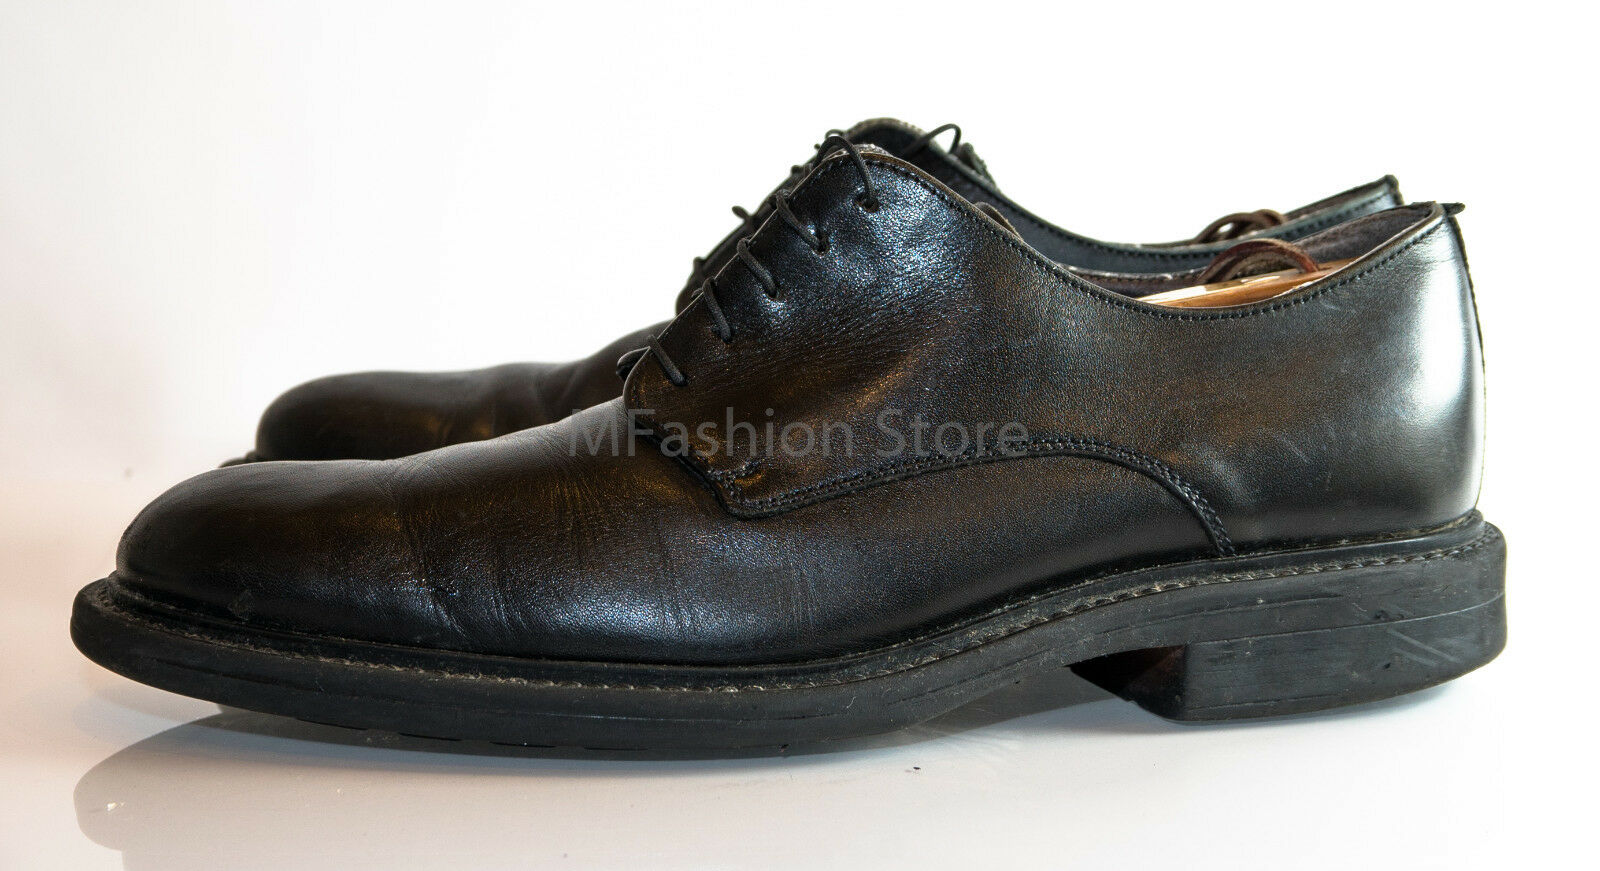 Franco Fortini Black LaceUp Leather Dress Oxford Formal shoes Mens Size US 10M